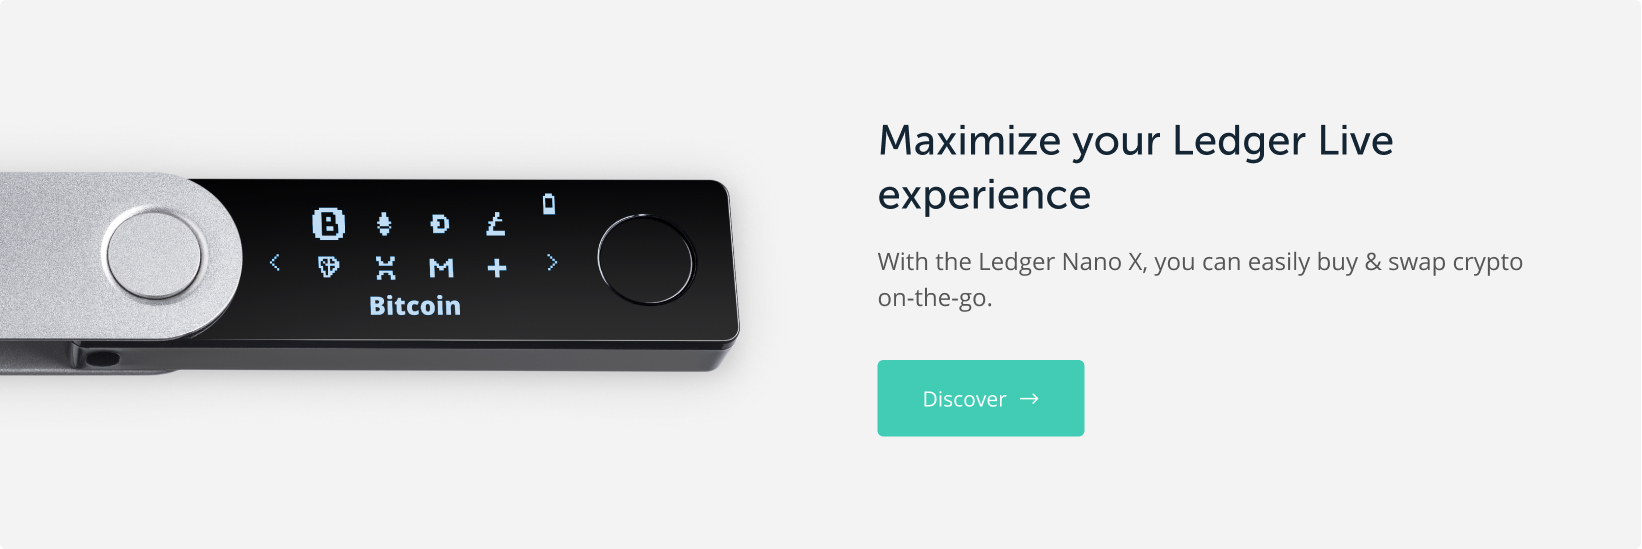 Discover the Ledger Nano X